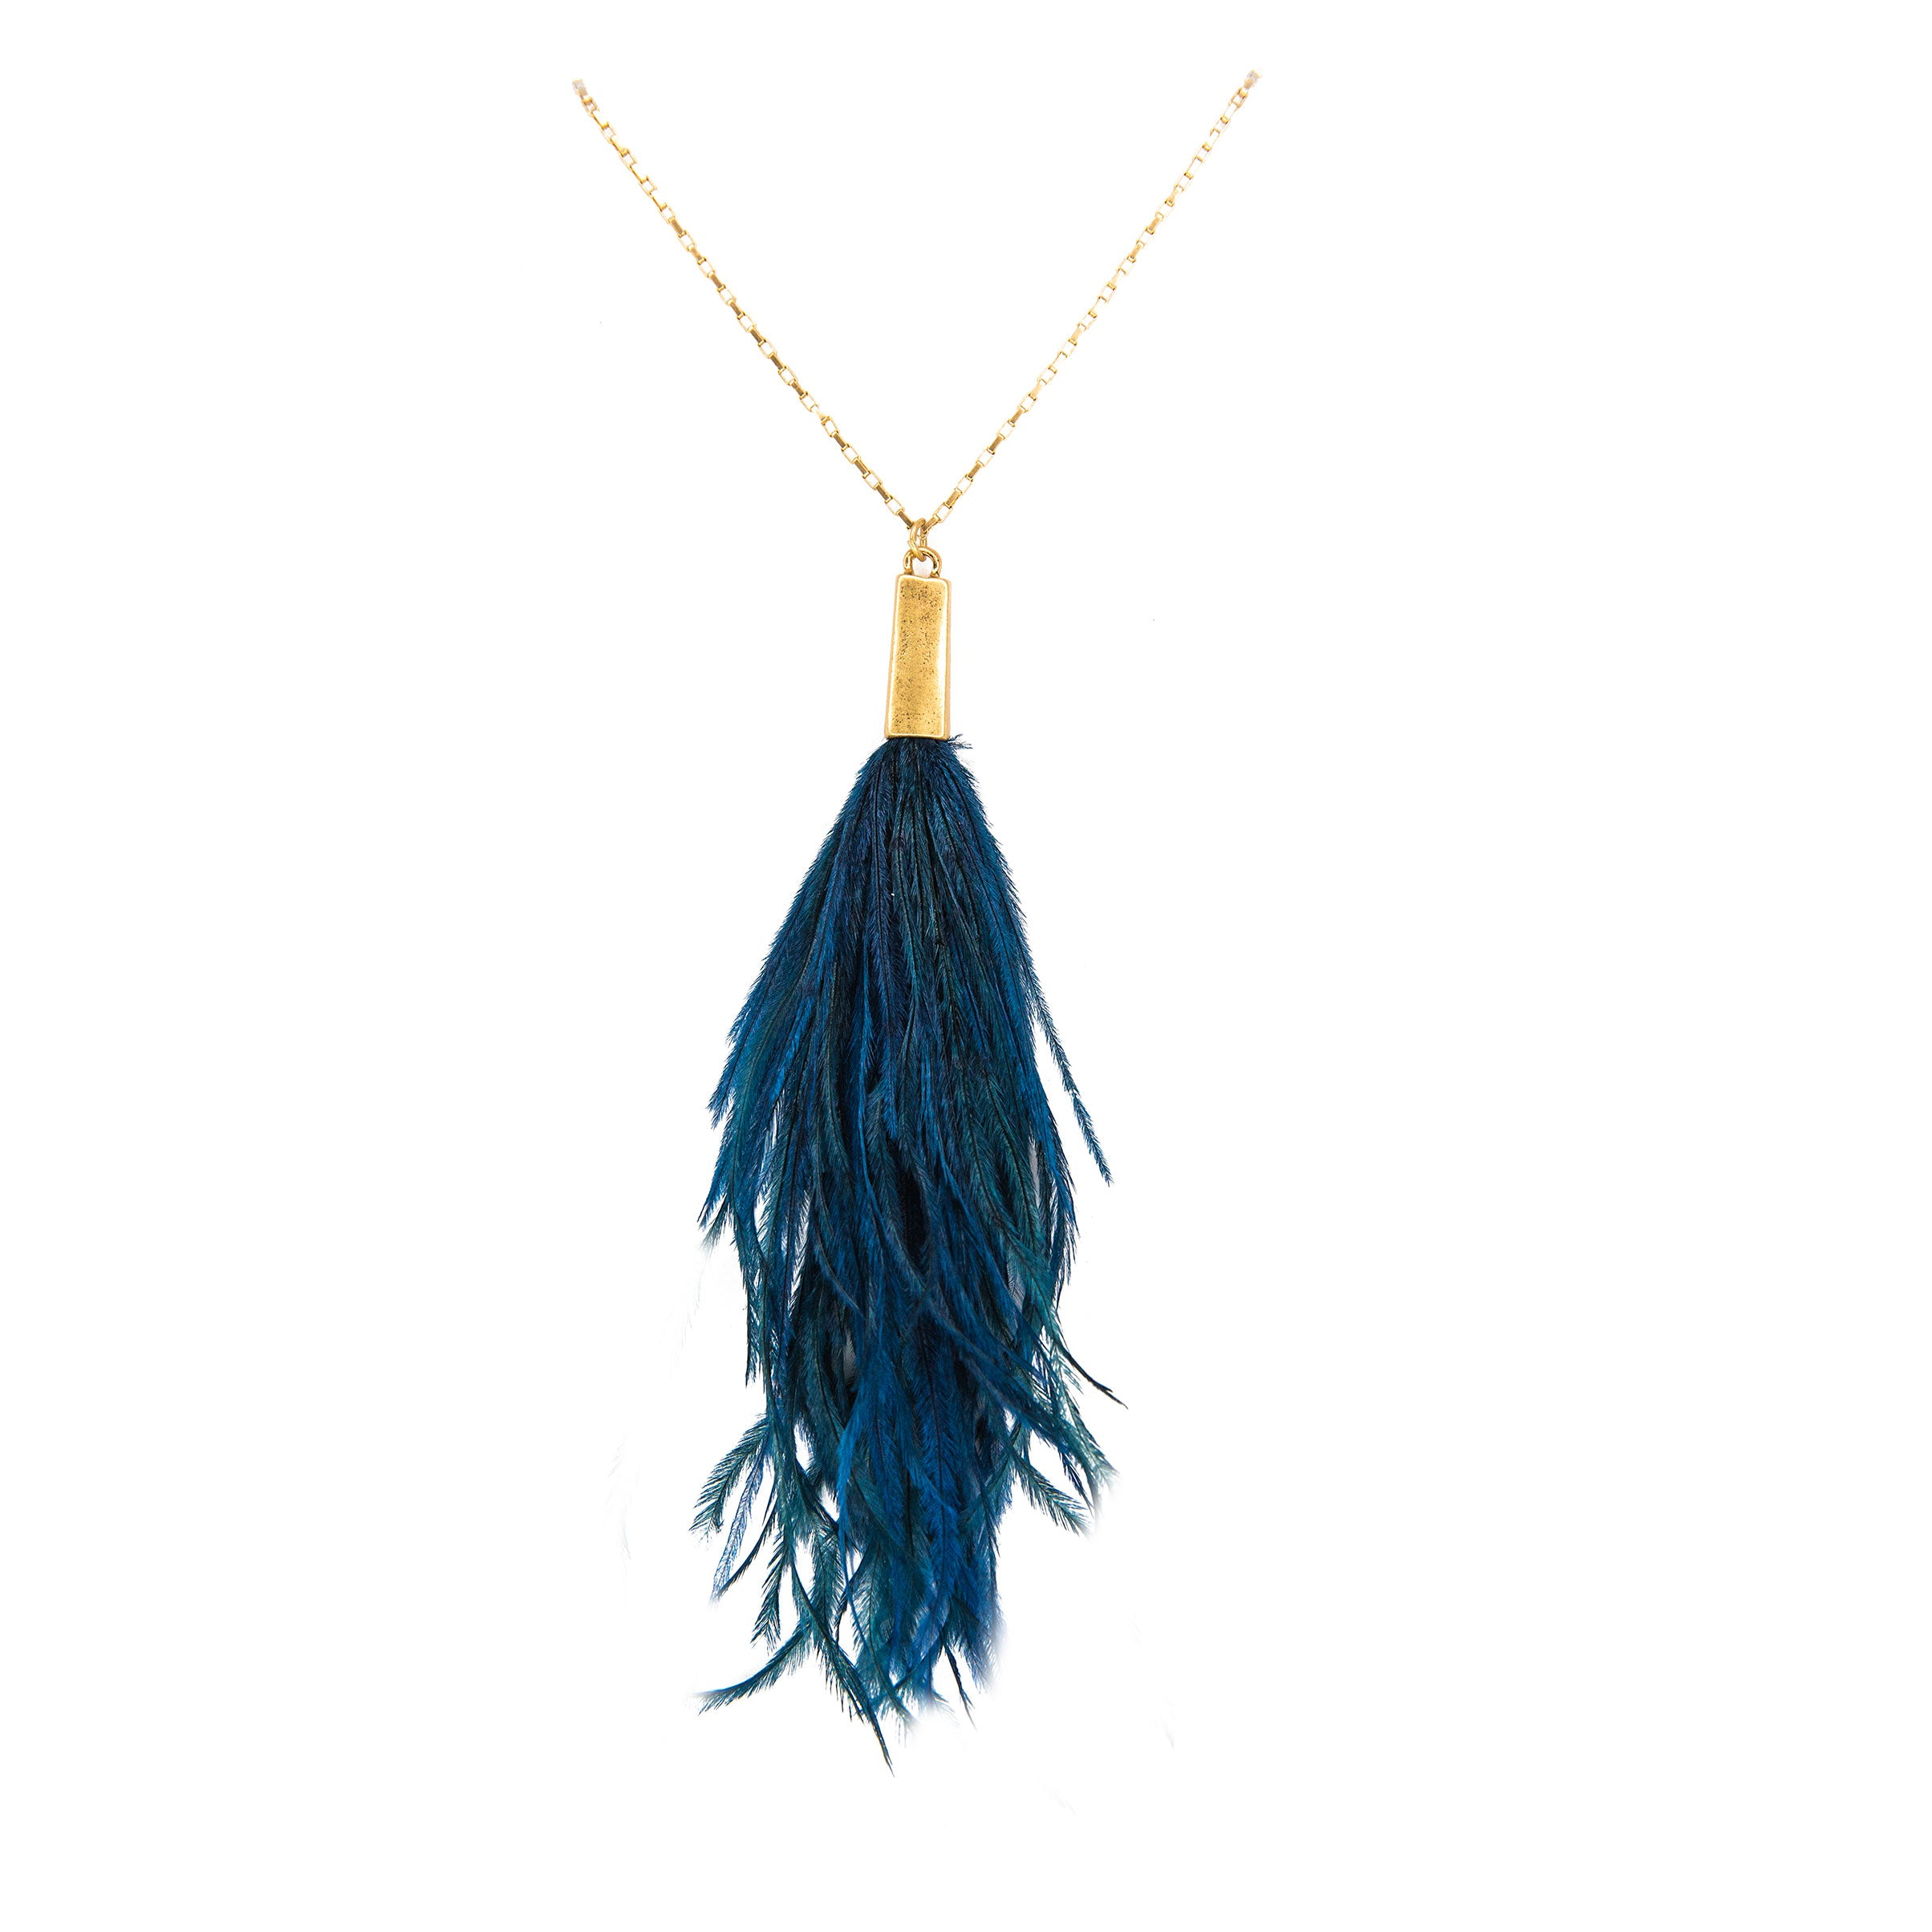 feather bohemian view charm peacock retro vintage quick p necklace boho